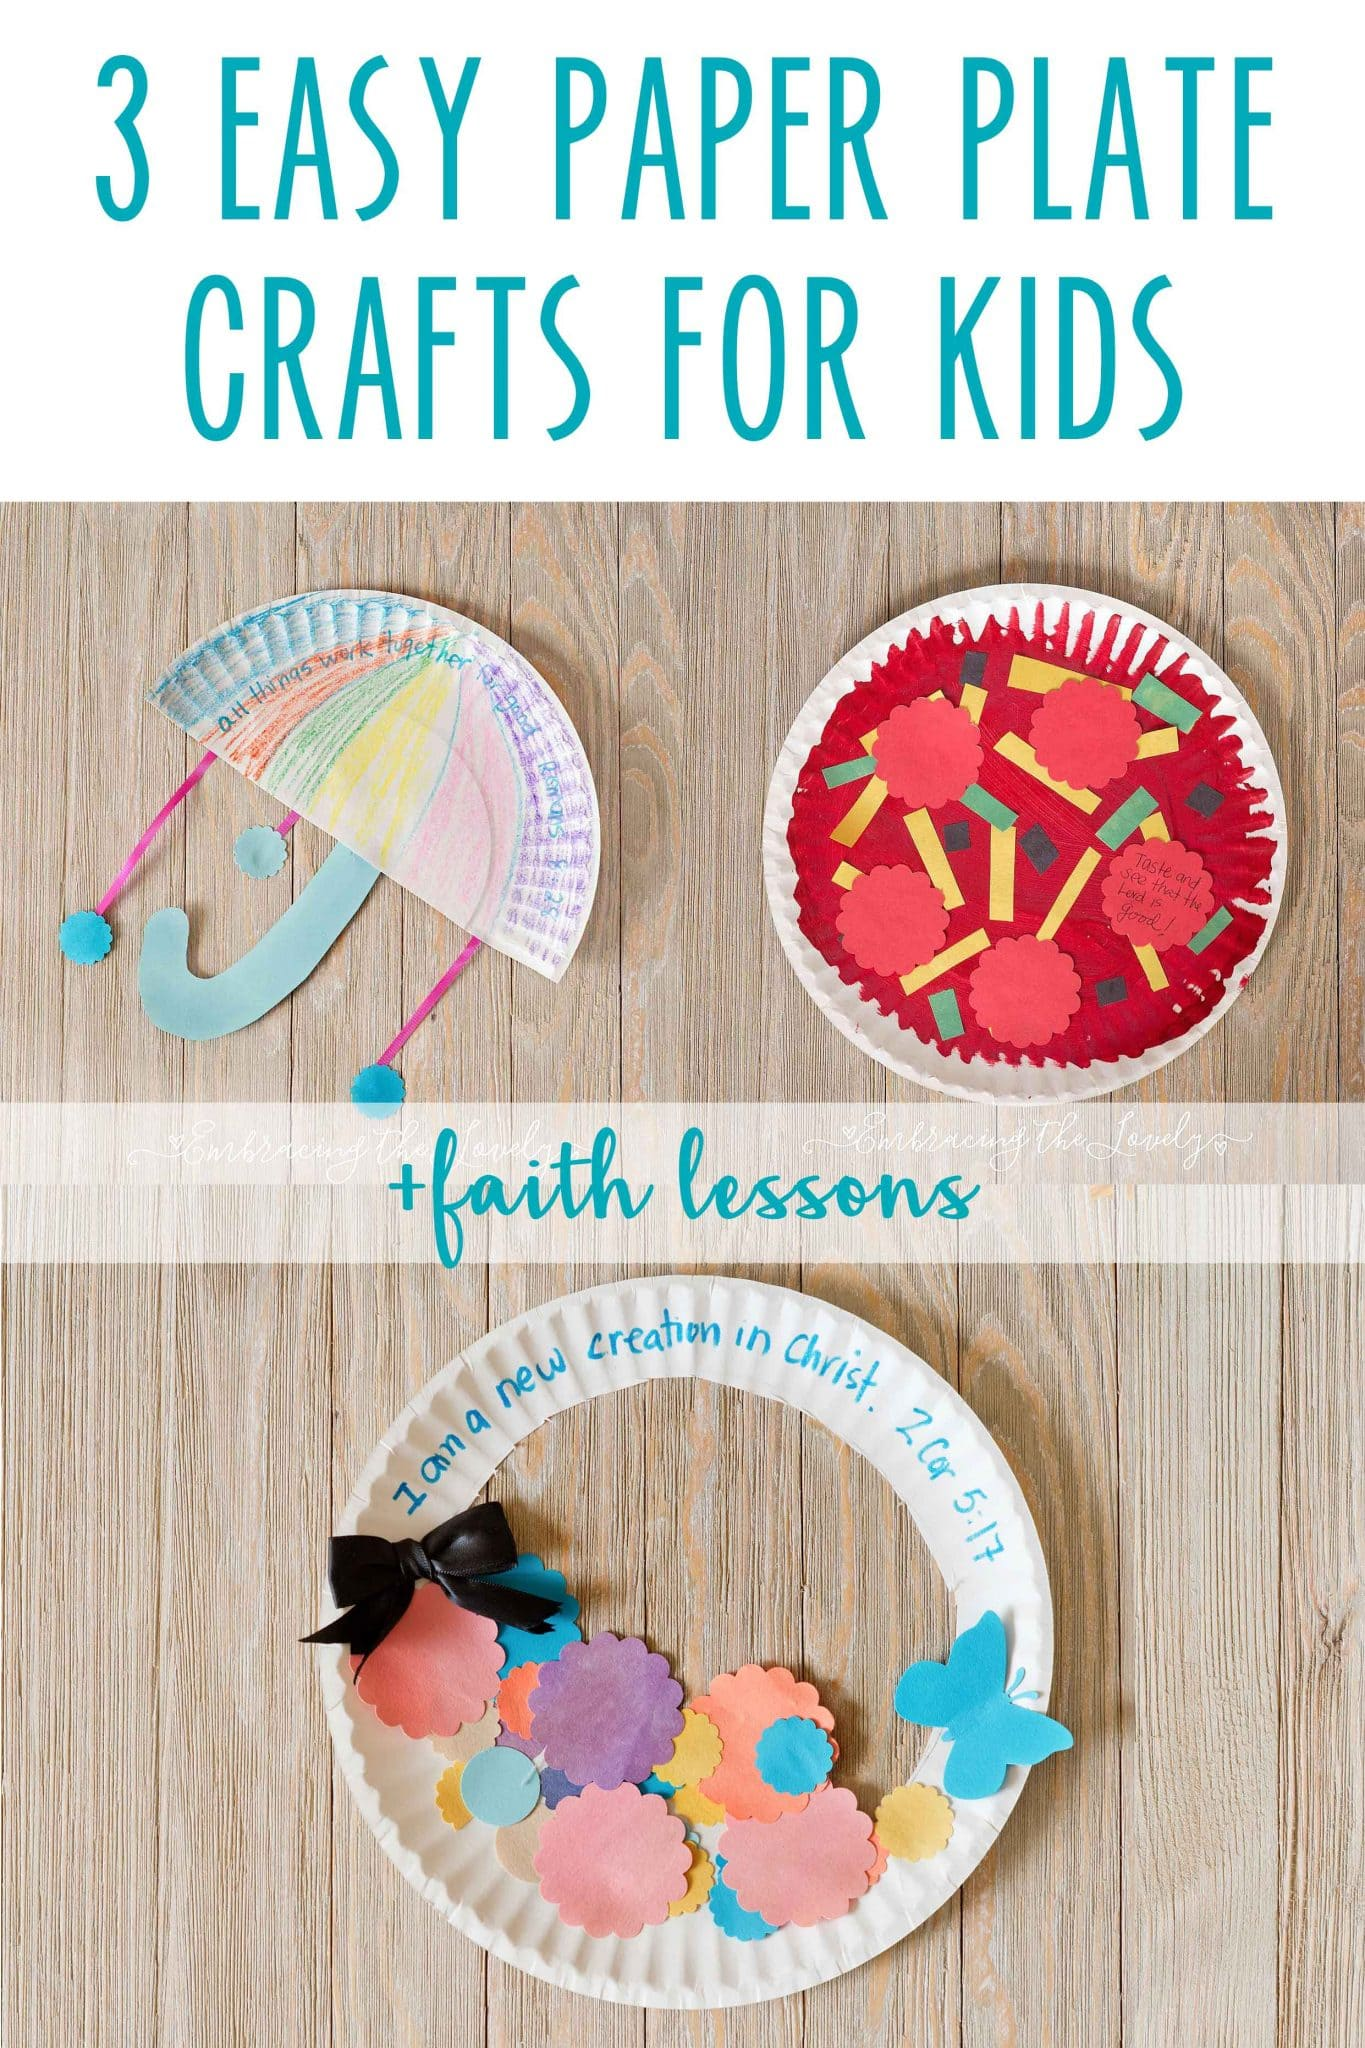 3 Paper Plate Crafts For Kids + Faith Lesson  sc 1 st  Embracing the Lovely & Easy Paper Plate Crafts for Kids +Faith Lessons with Embracing the ...